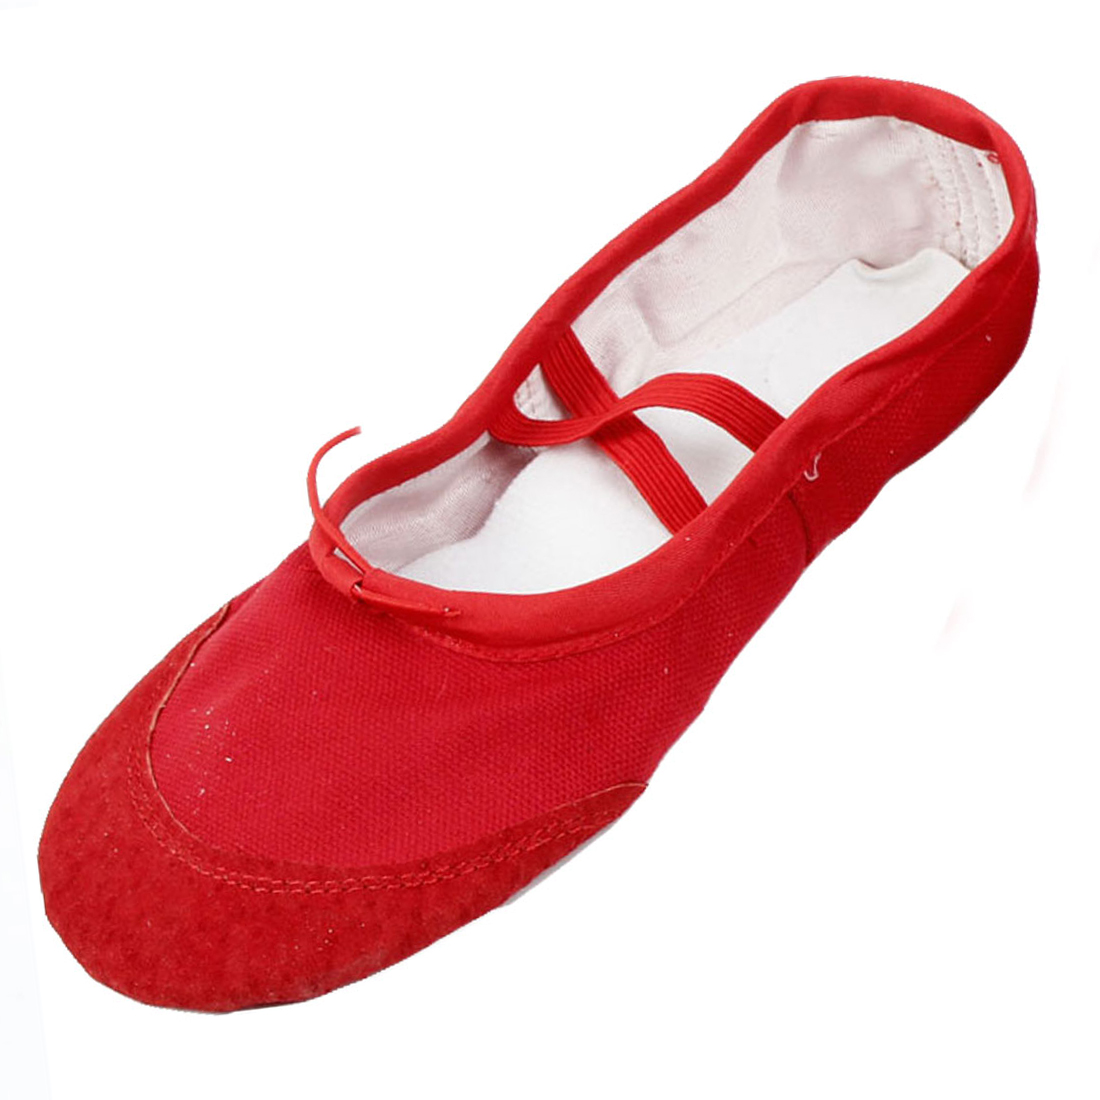 Red Split Sole Drawstring Top Ballet Dancing Flats Shoes Size 39 for Lady